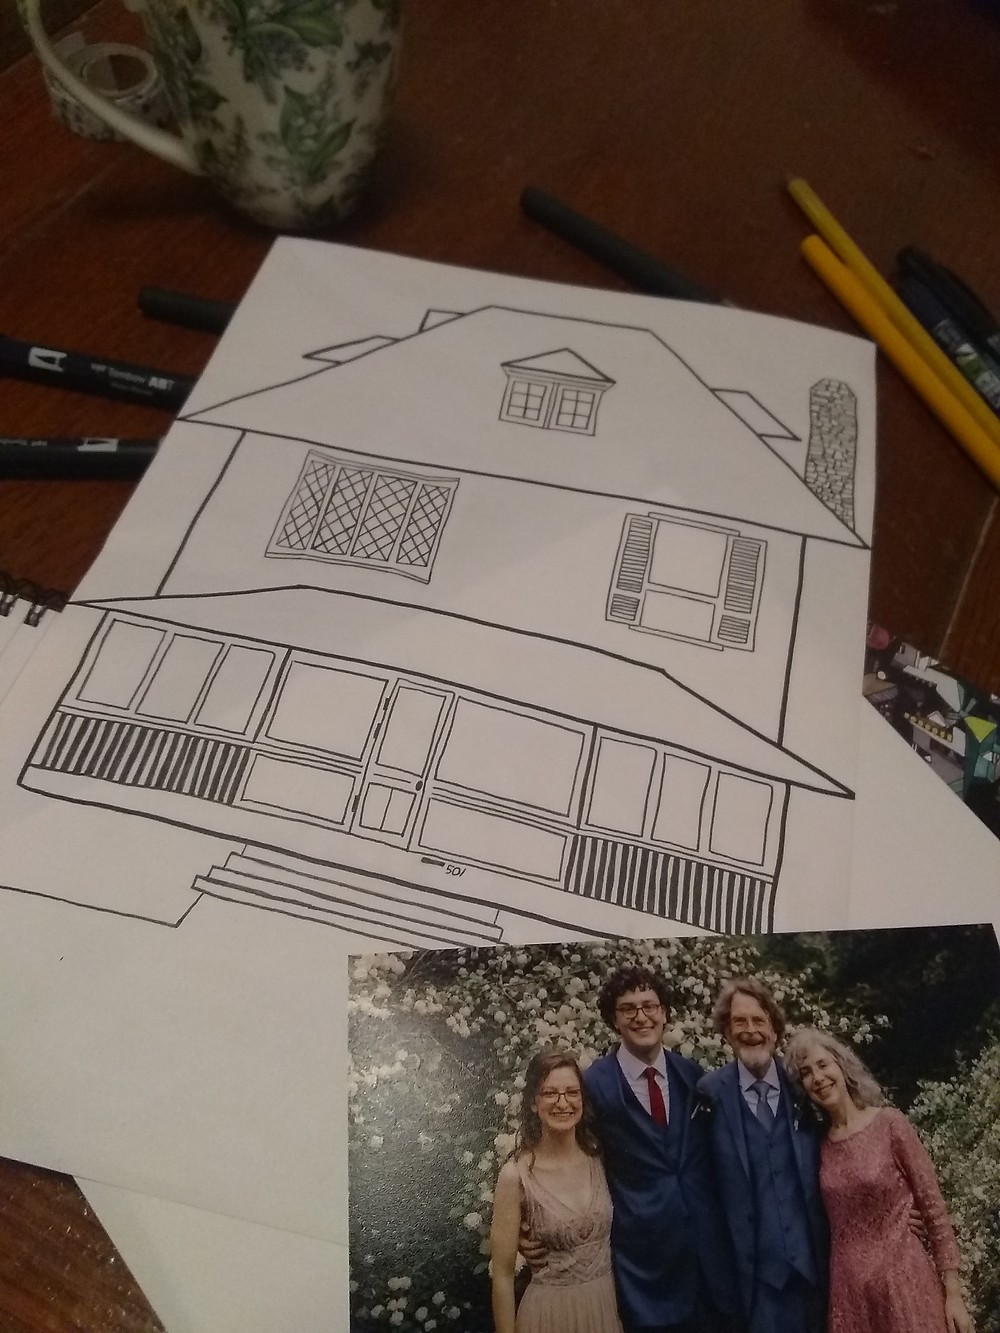 A drawing of my house and a photo of my family.